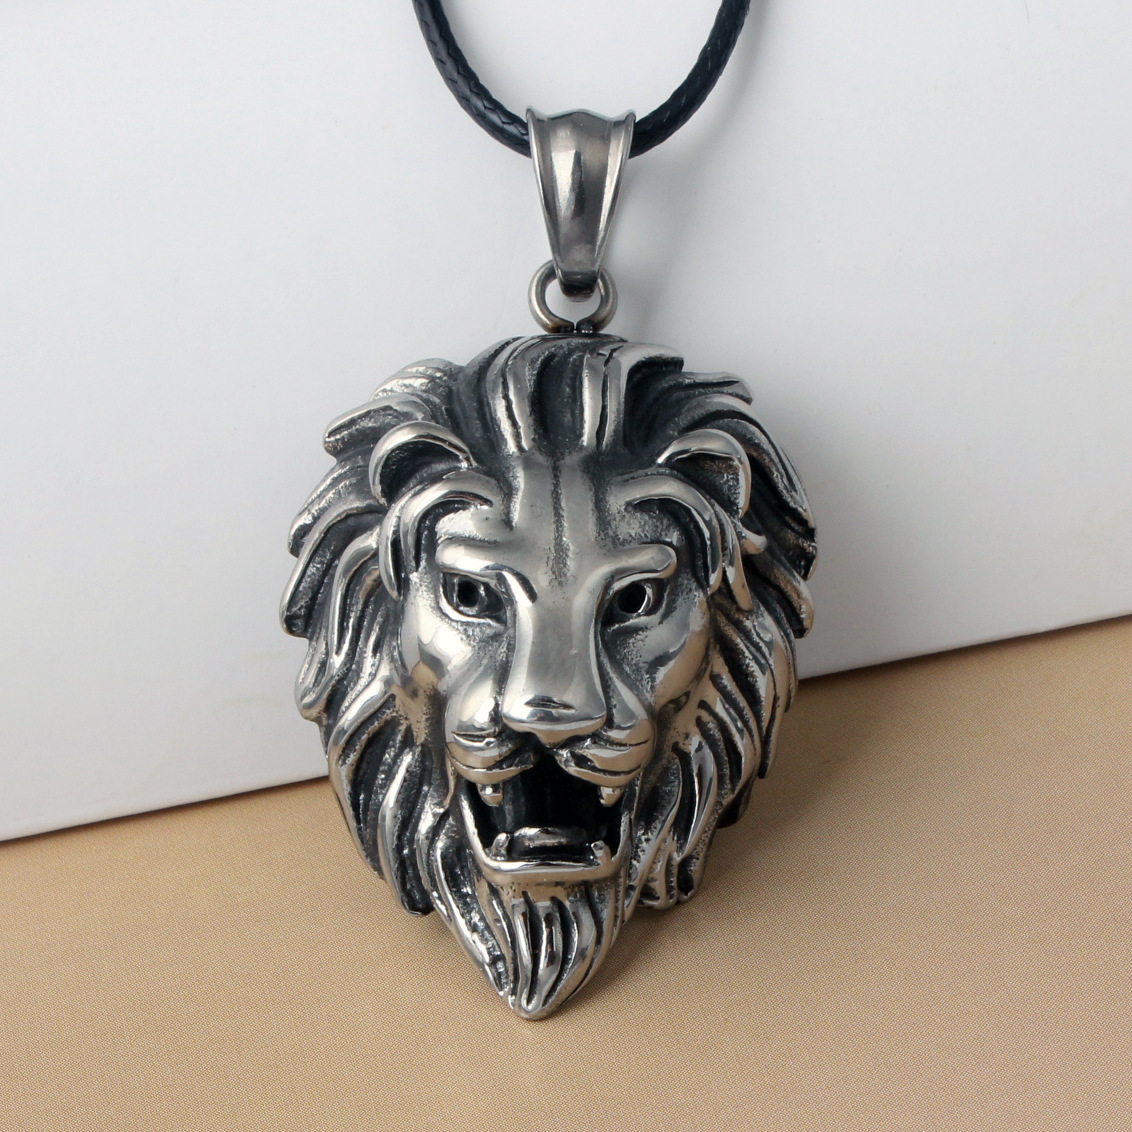 Retro Punk Style Hip Hop Lion Head Pendant Necklace For Men Luxury Male Jewelry Friendship Gift